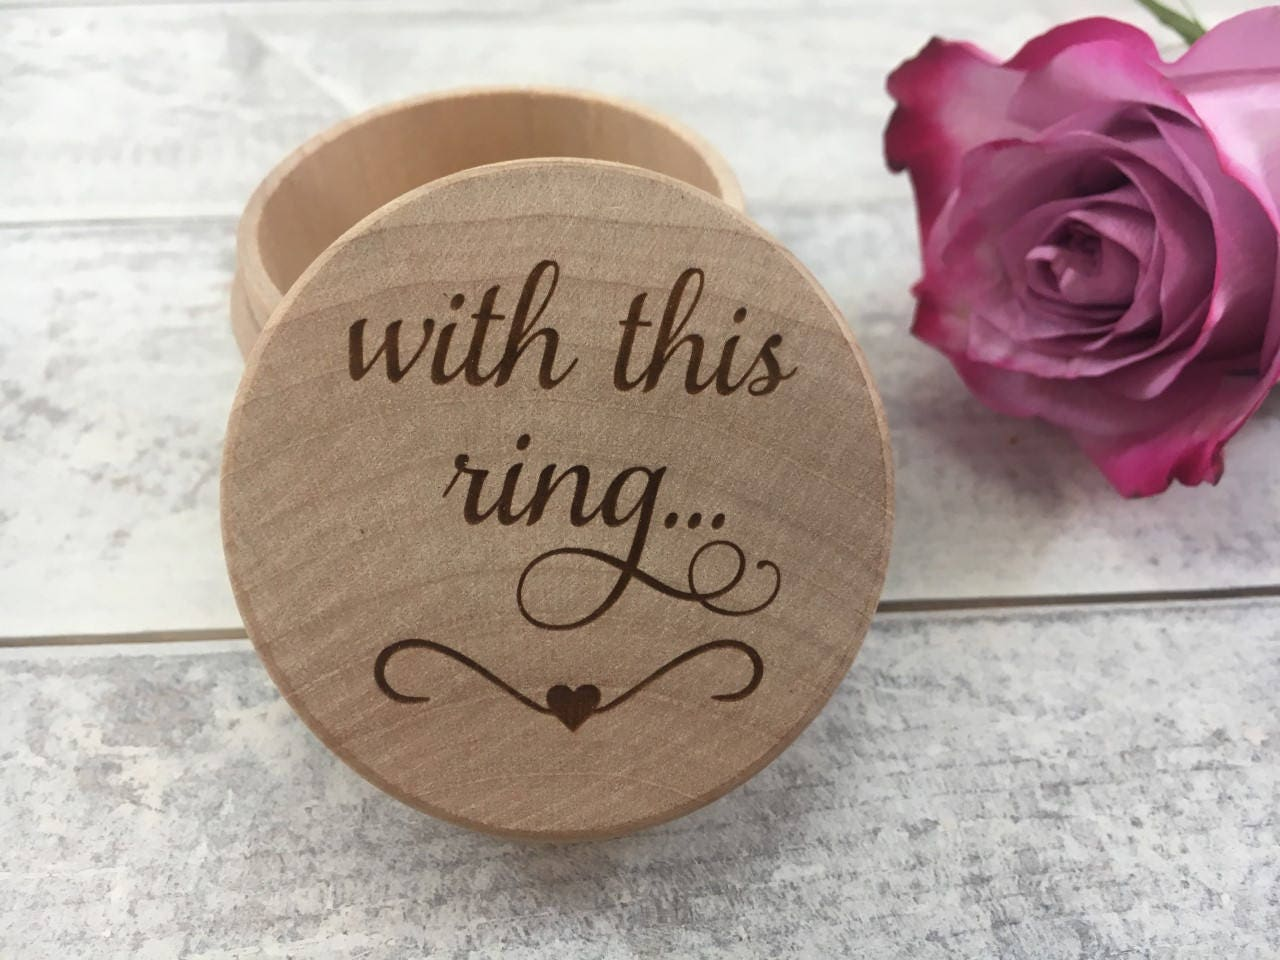 Engraved With This Ring Wedding Ring Box Engraved Wedding Ring Box